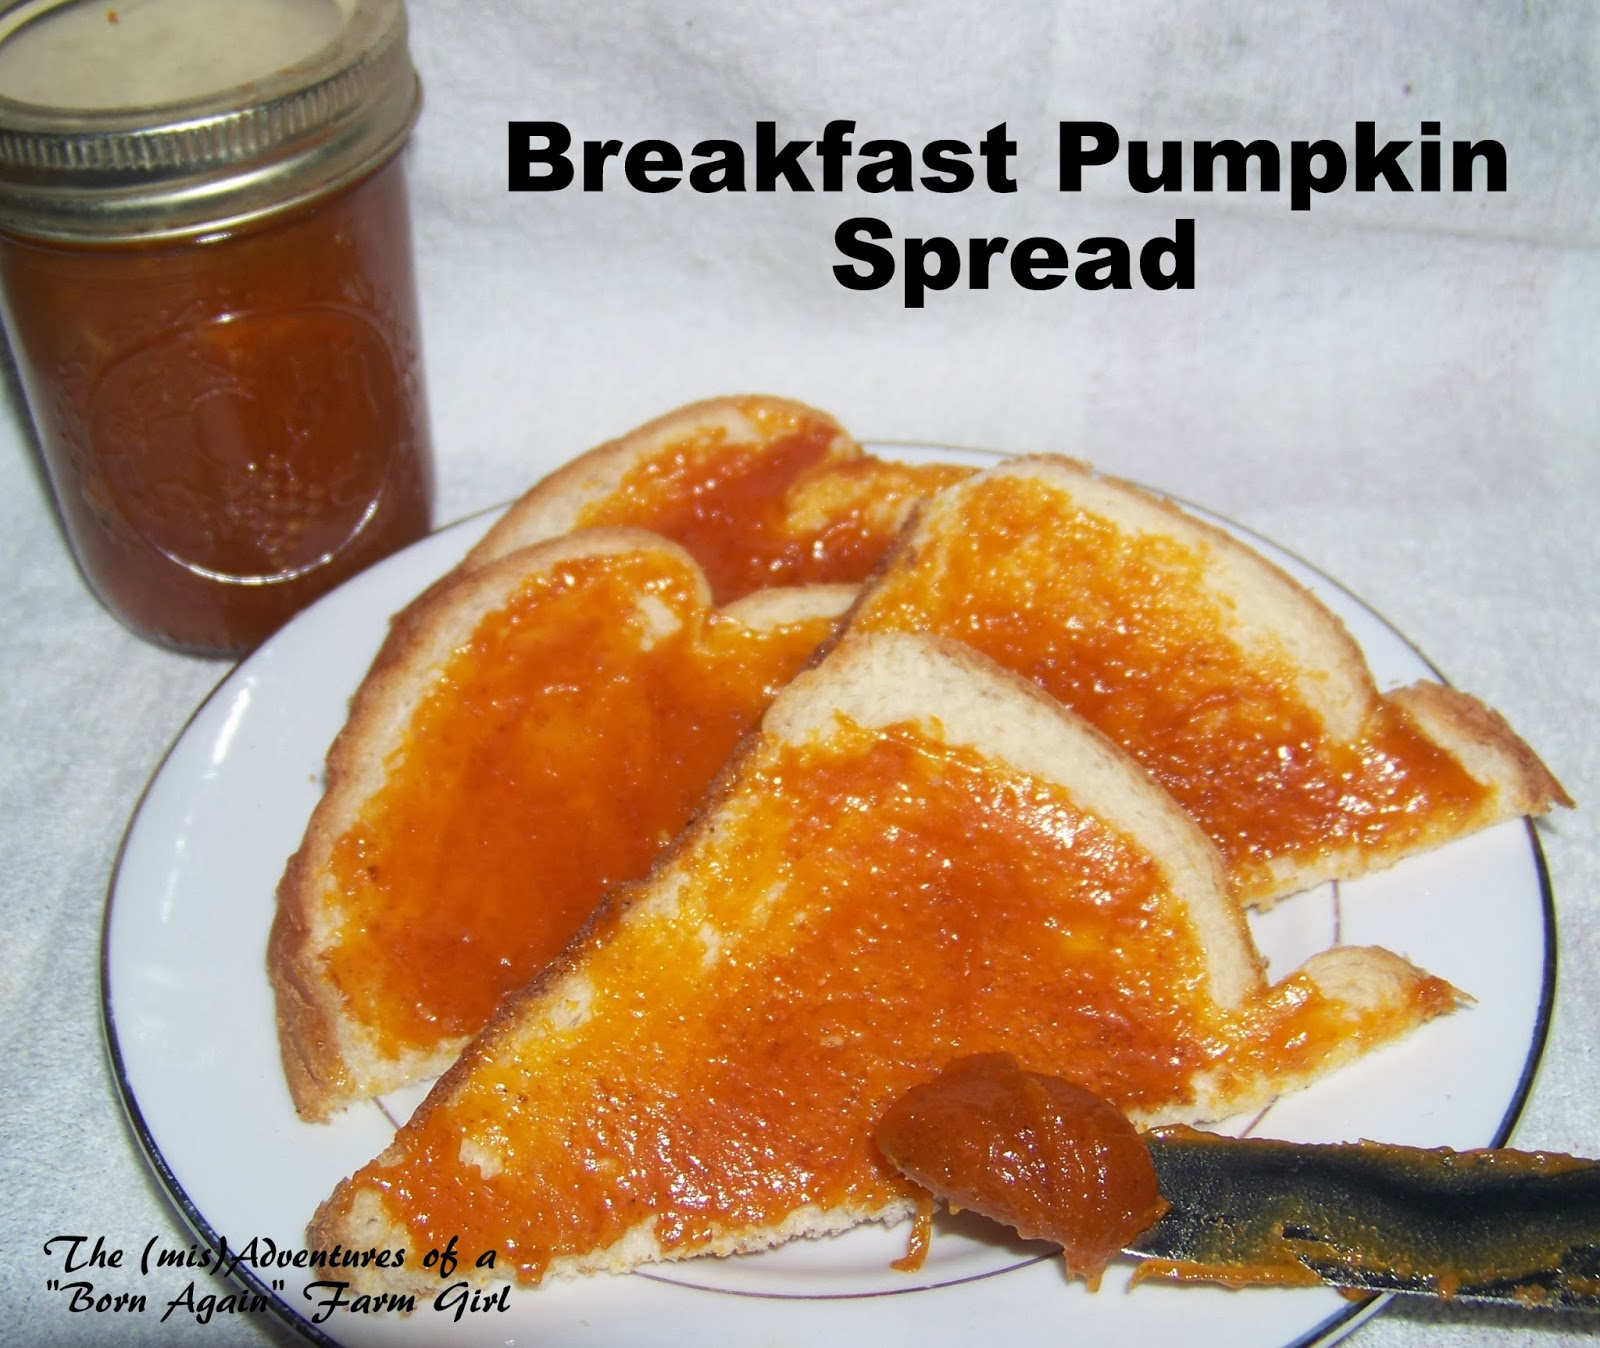 Pumpkin Breakfast Spread